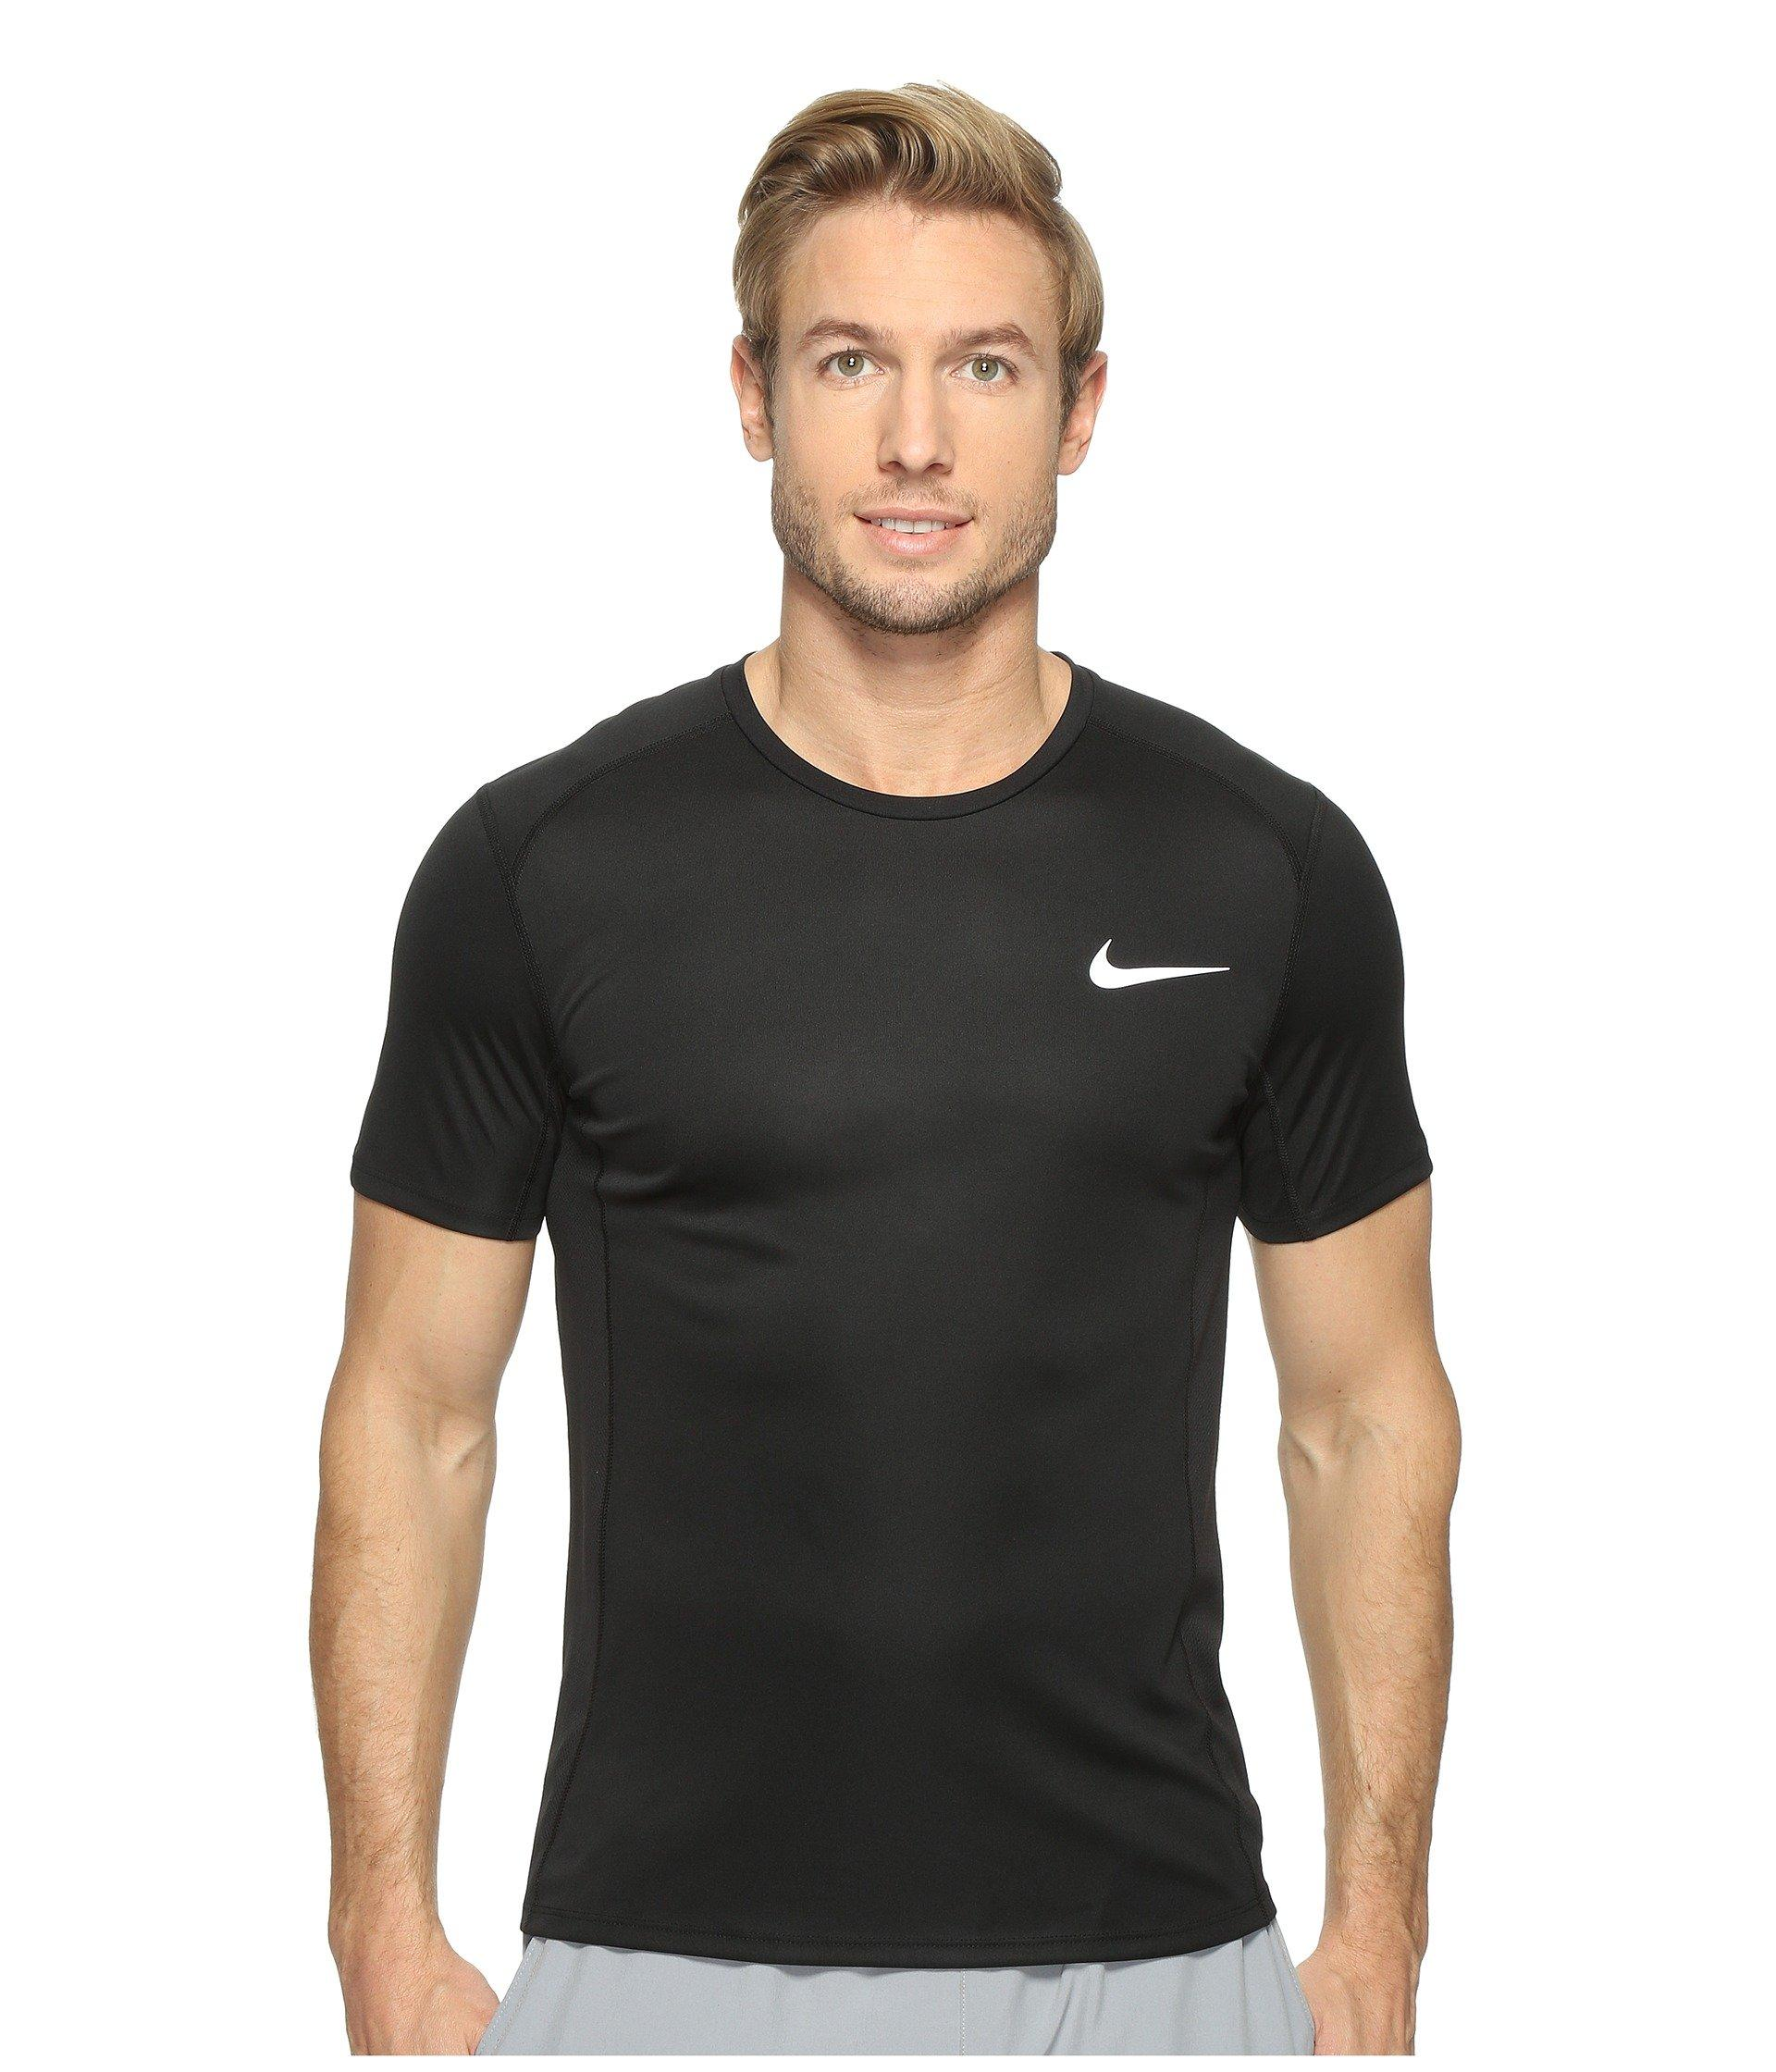 8d1f31b12201 Lyst - Nike Dry Miler Short Sleeve Running Top in Black for Men ...